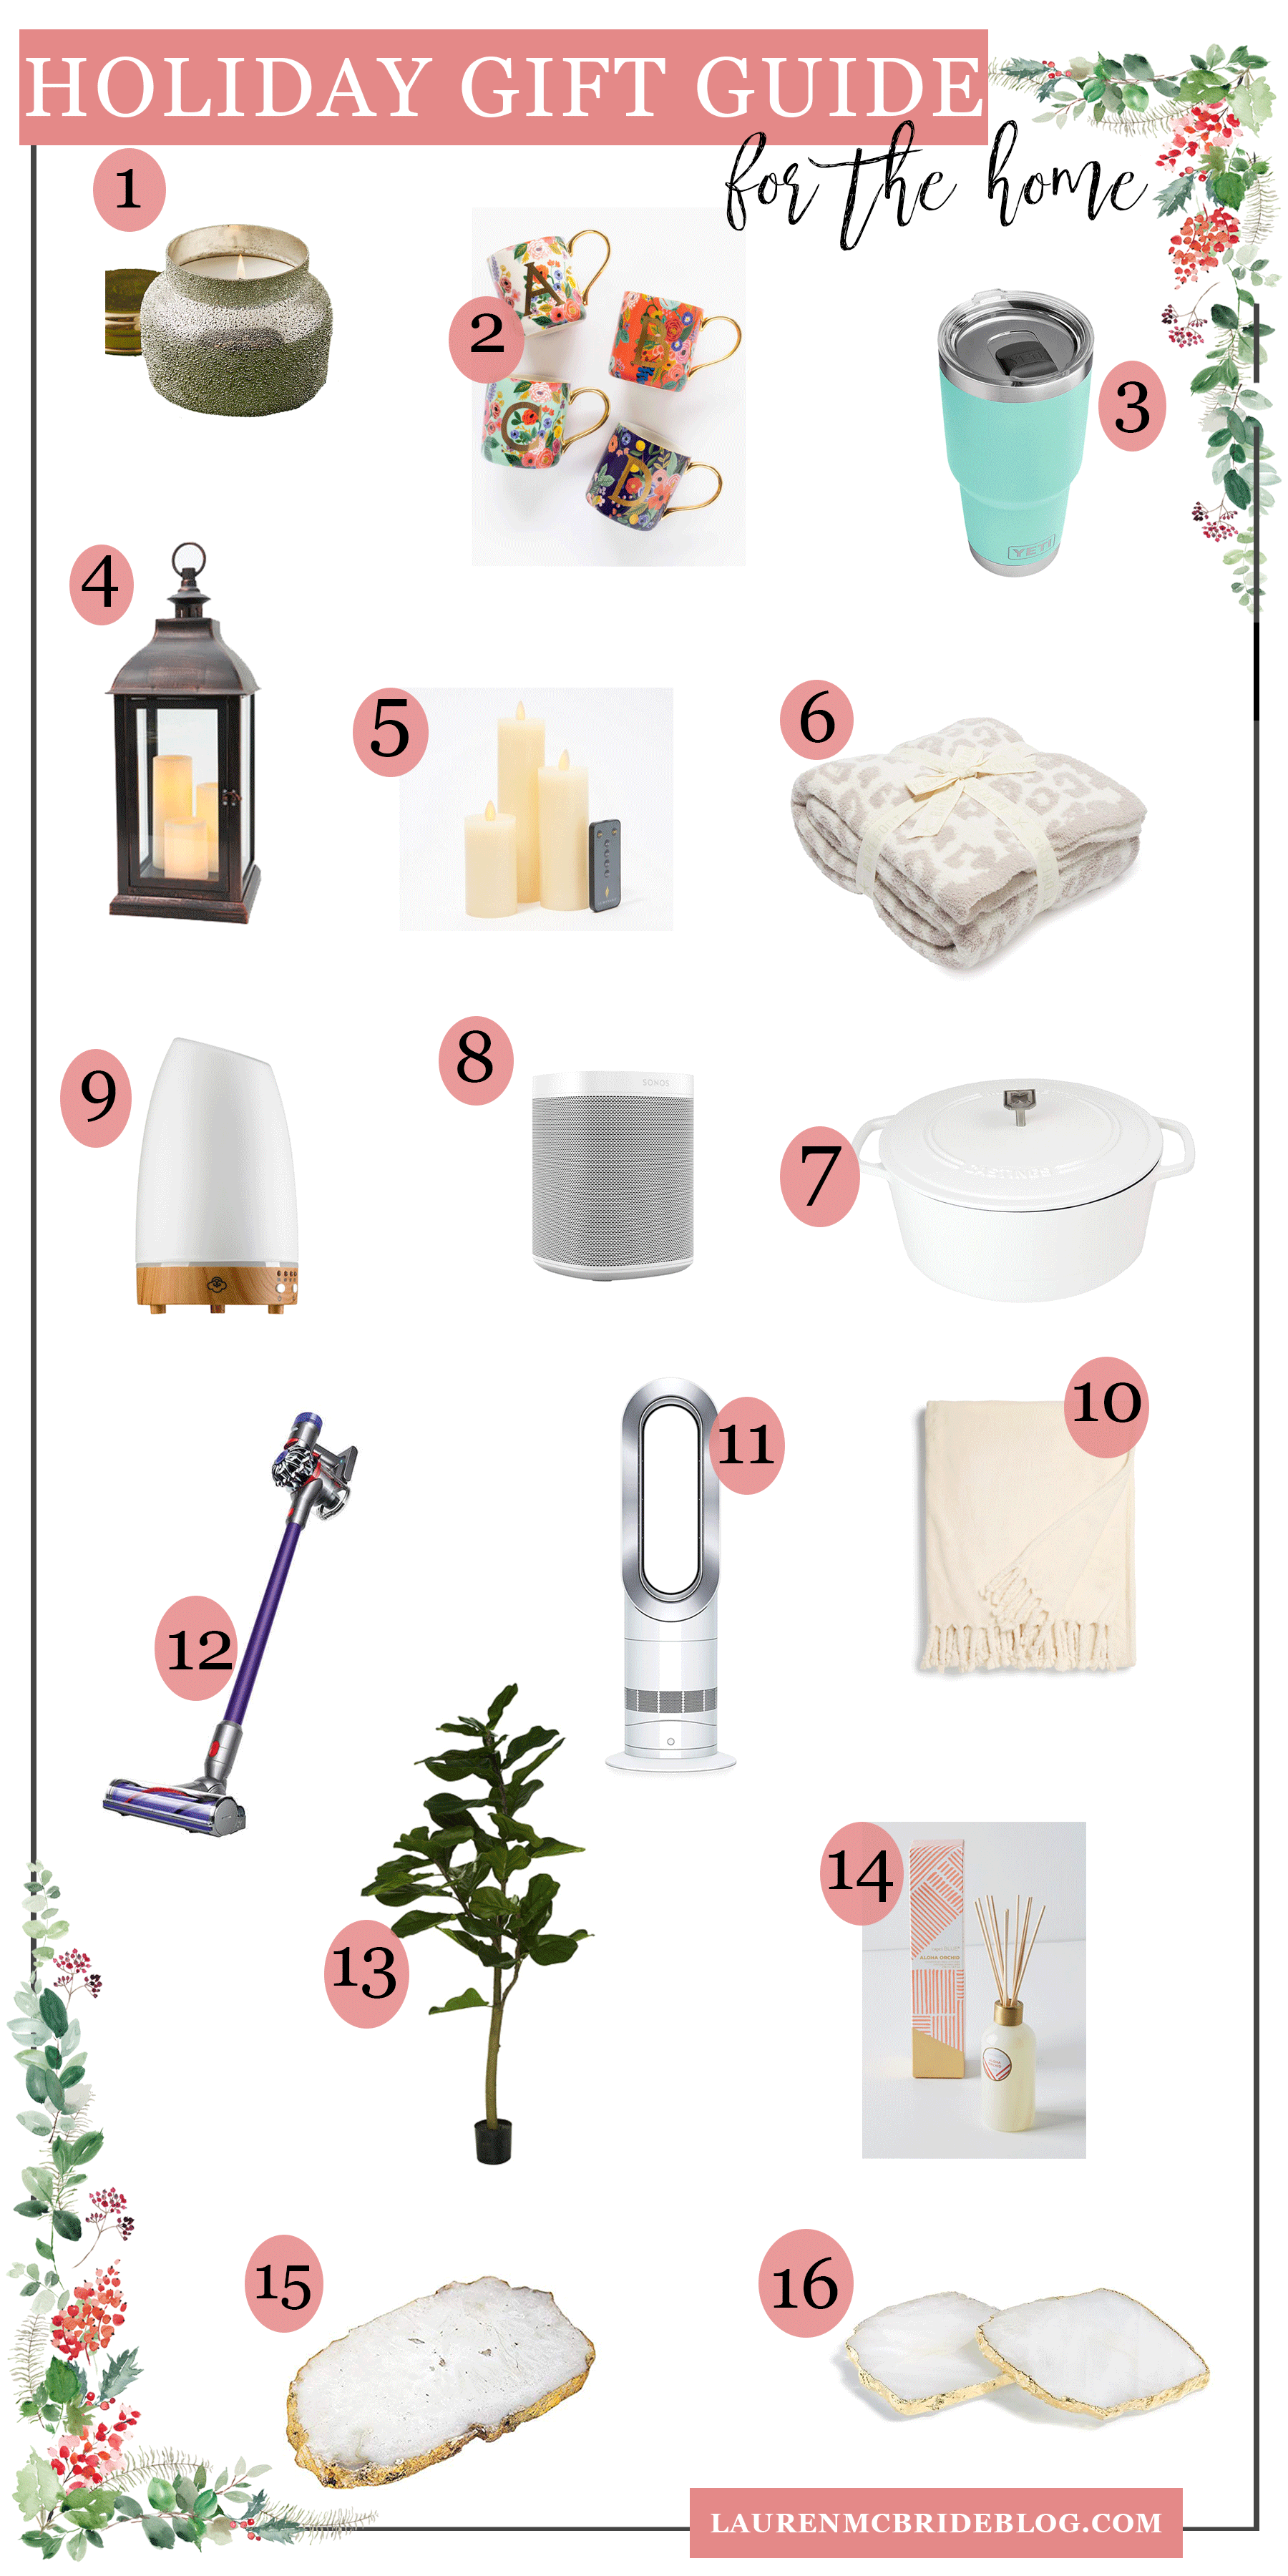 Looking for the best holiday gifts for the home? Connecticut Lifestyle Blogger Lauren McBride is sharing the best holiday gifts for the home. Click to see them HERE!